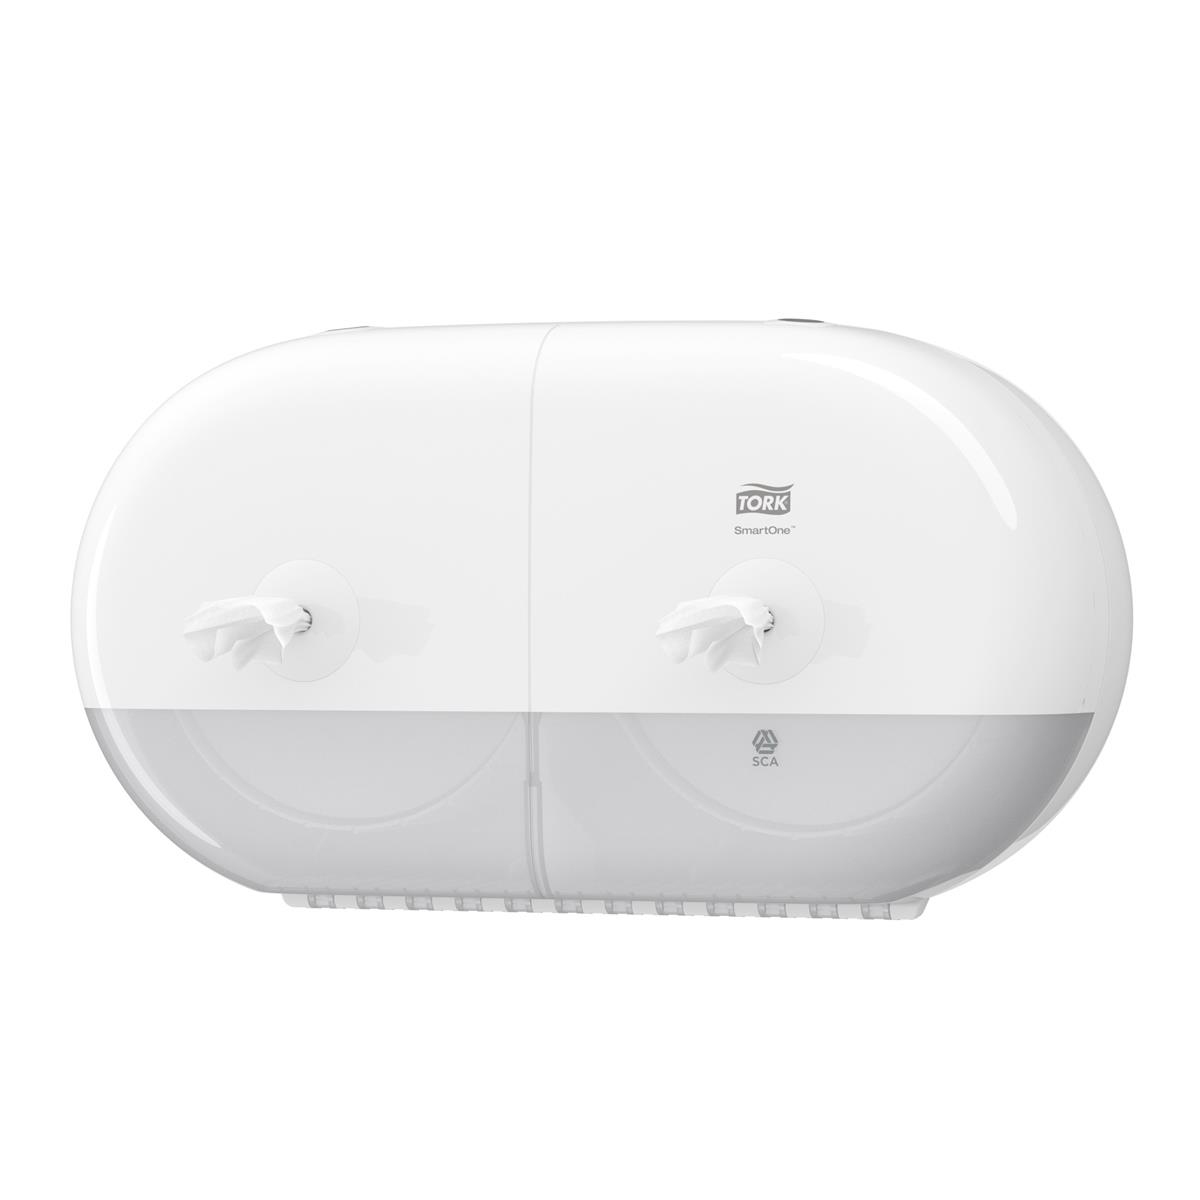 Toilet tissue dispensers Tork SmartOne Twin Mini Toilet Roll Dispenser W398156x221mm White Ref 682000